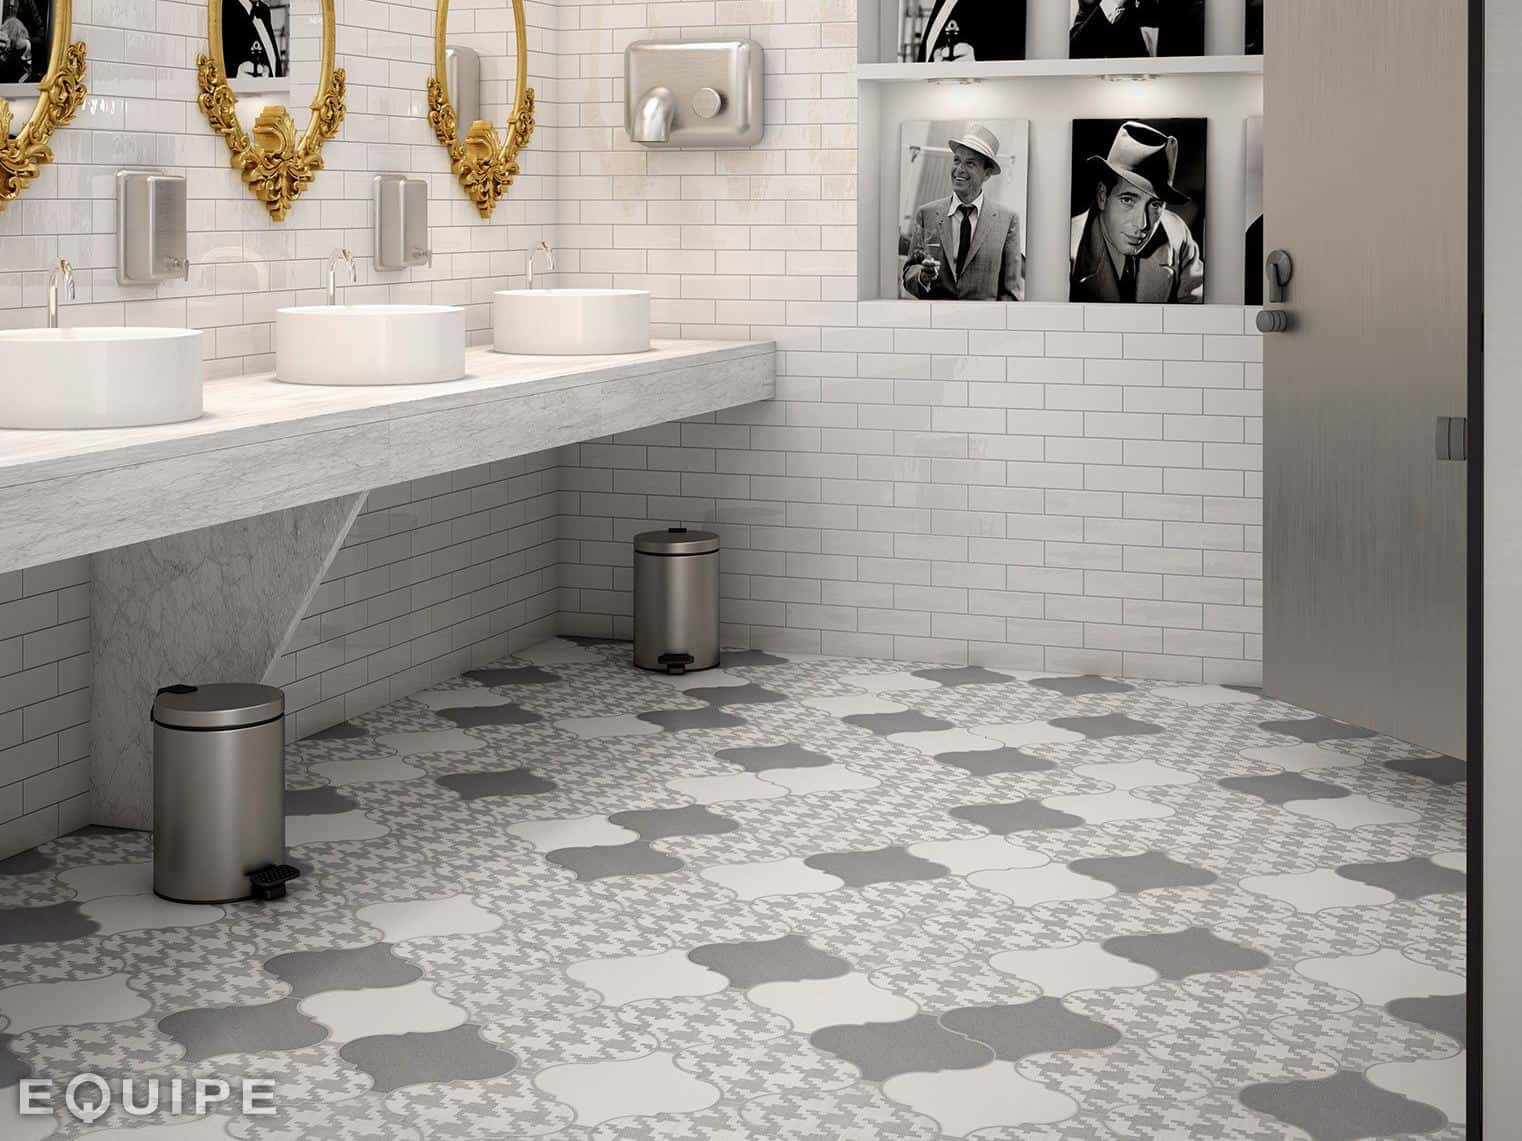 Grey Floor Tiles Bathroom 21 Arabesque Tile Ideas For Floor Wall And Backsplash